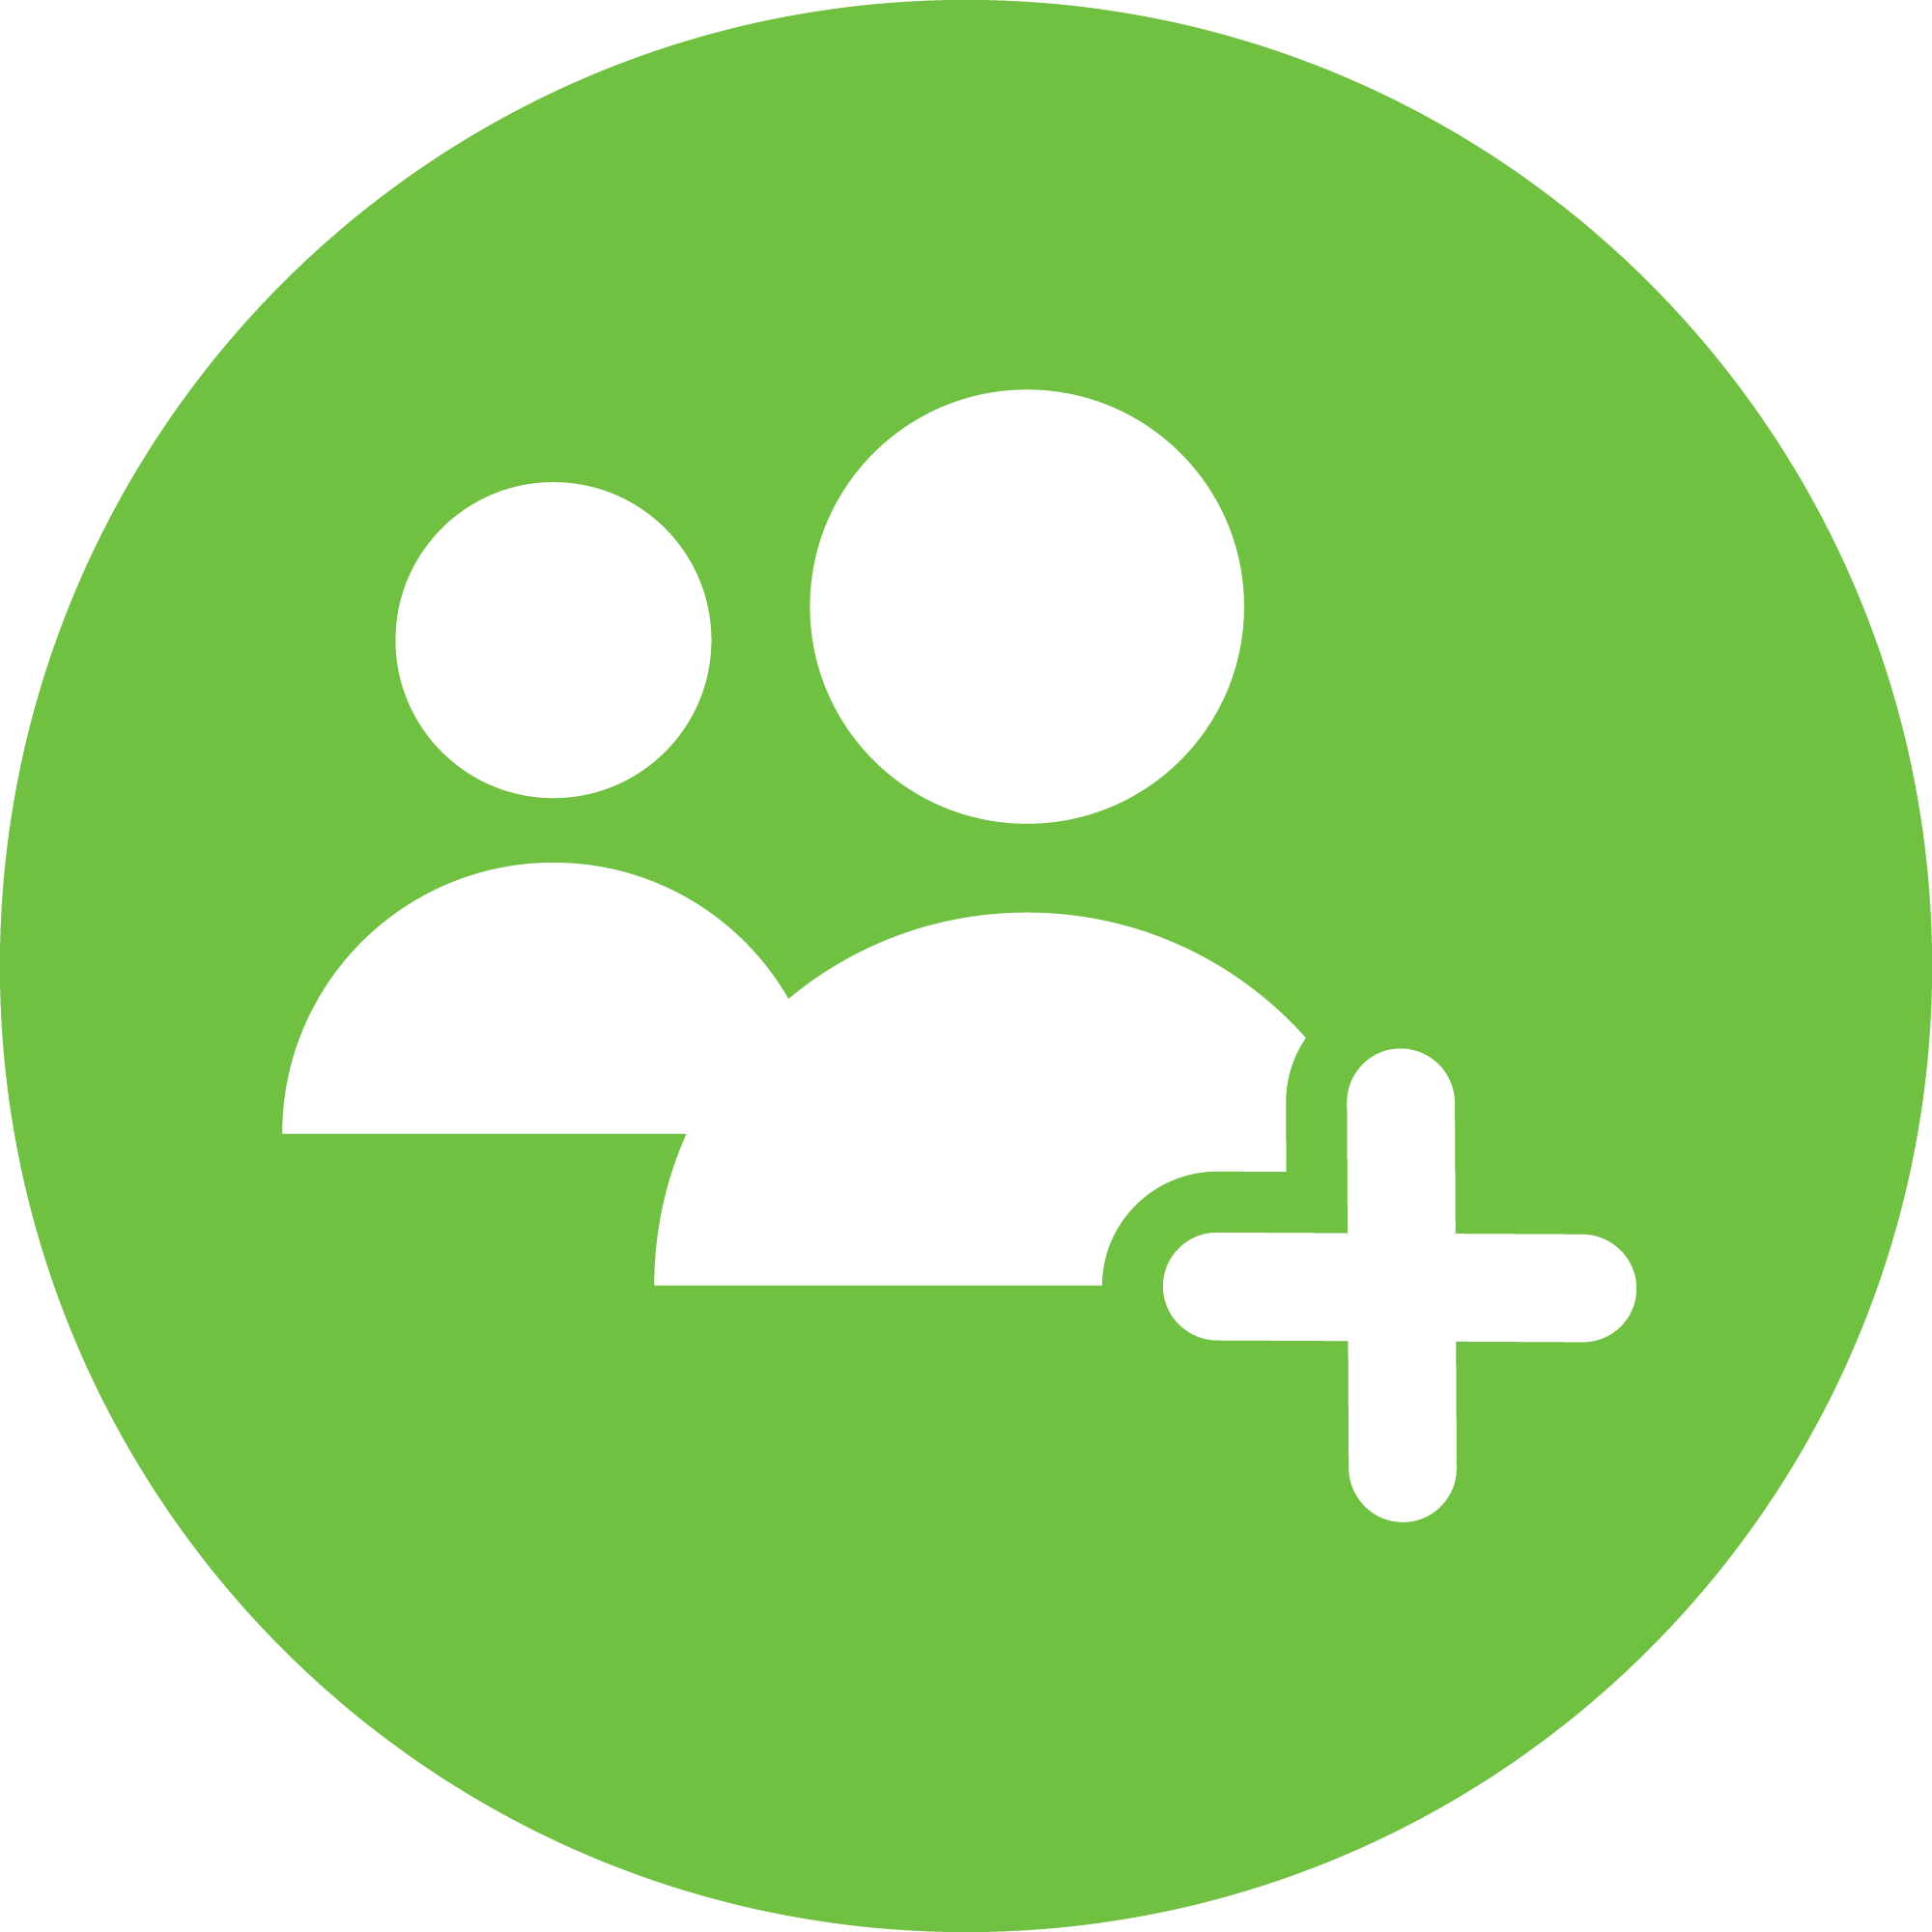 The Friend Icon Represents Adding More People To Your Life For Collaboration And Comfort Motivation Relationship Representation